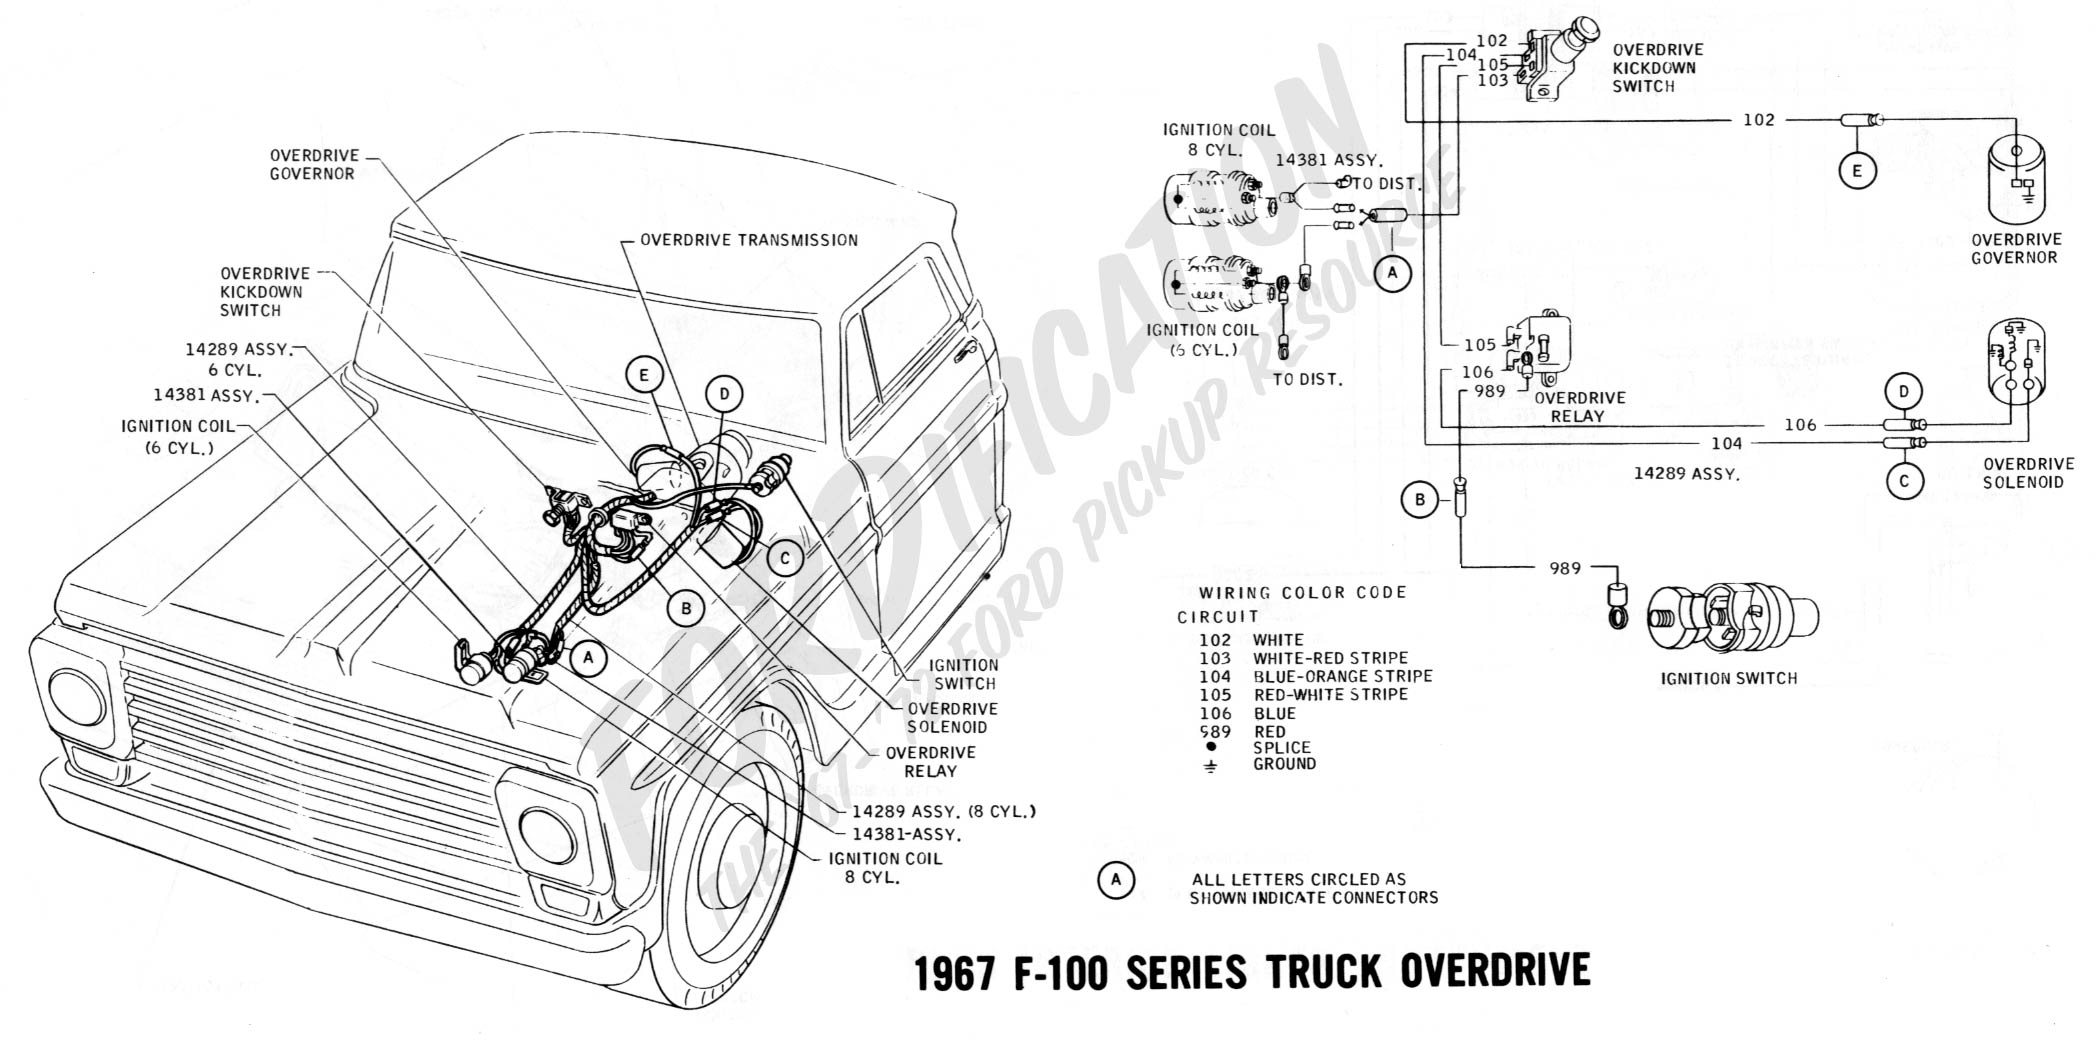 2001 Ford Steering Column Wiring Harness Just Another 42 Chevy Truck Diagram Schematic Schema Diagrams Rh Justanotherbeautyblog De